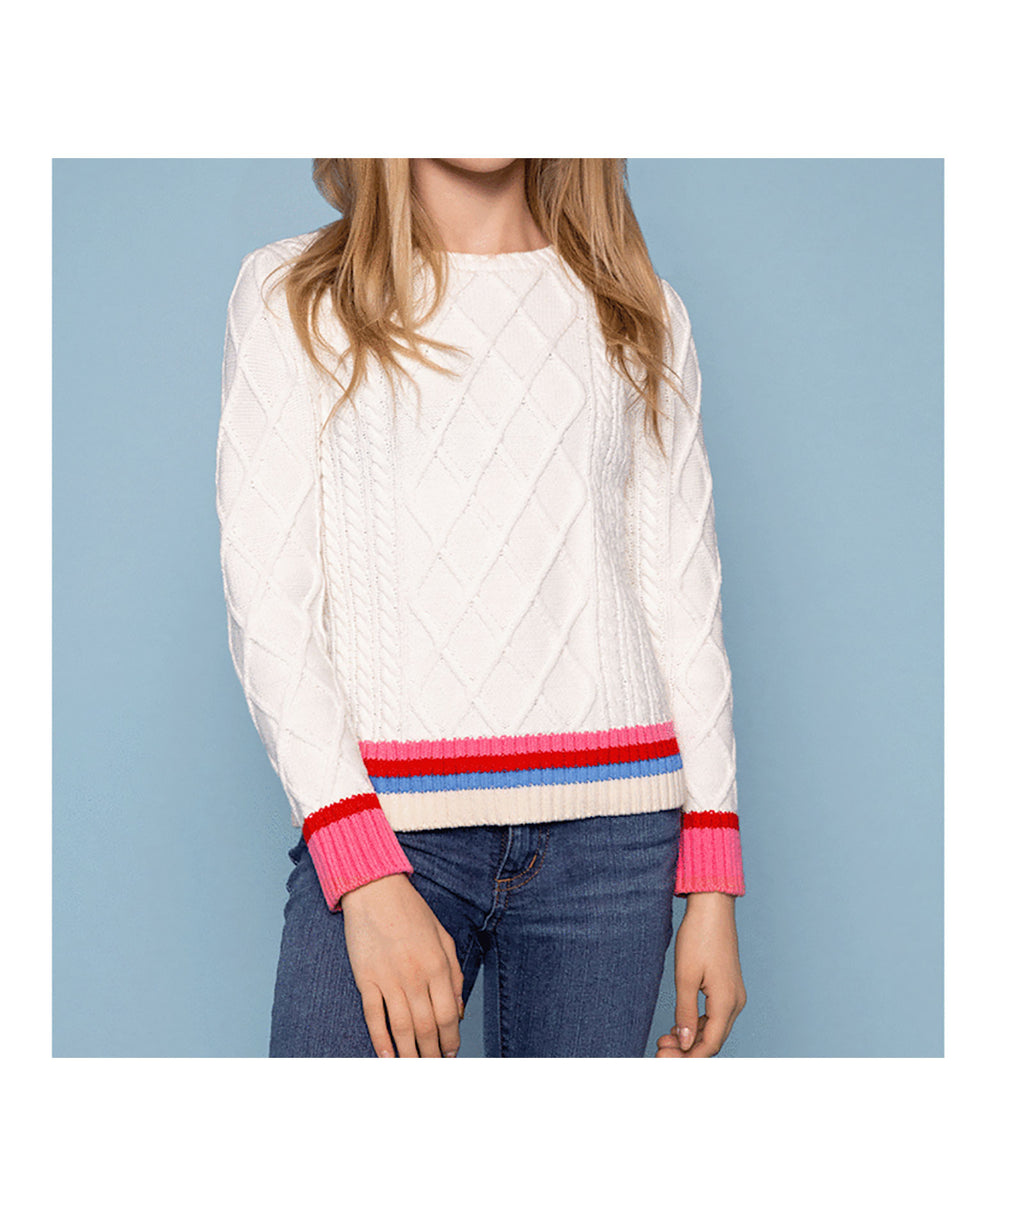 Me.n.u Girls Ivory Cable Knit Sweater